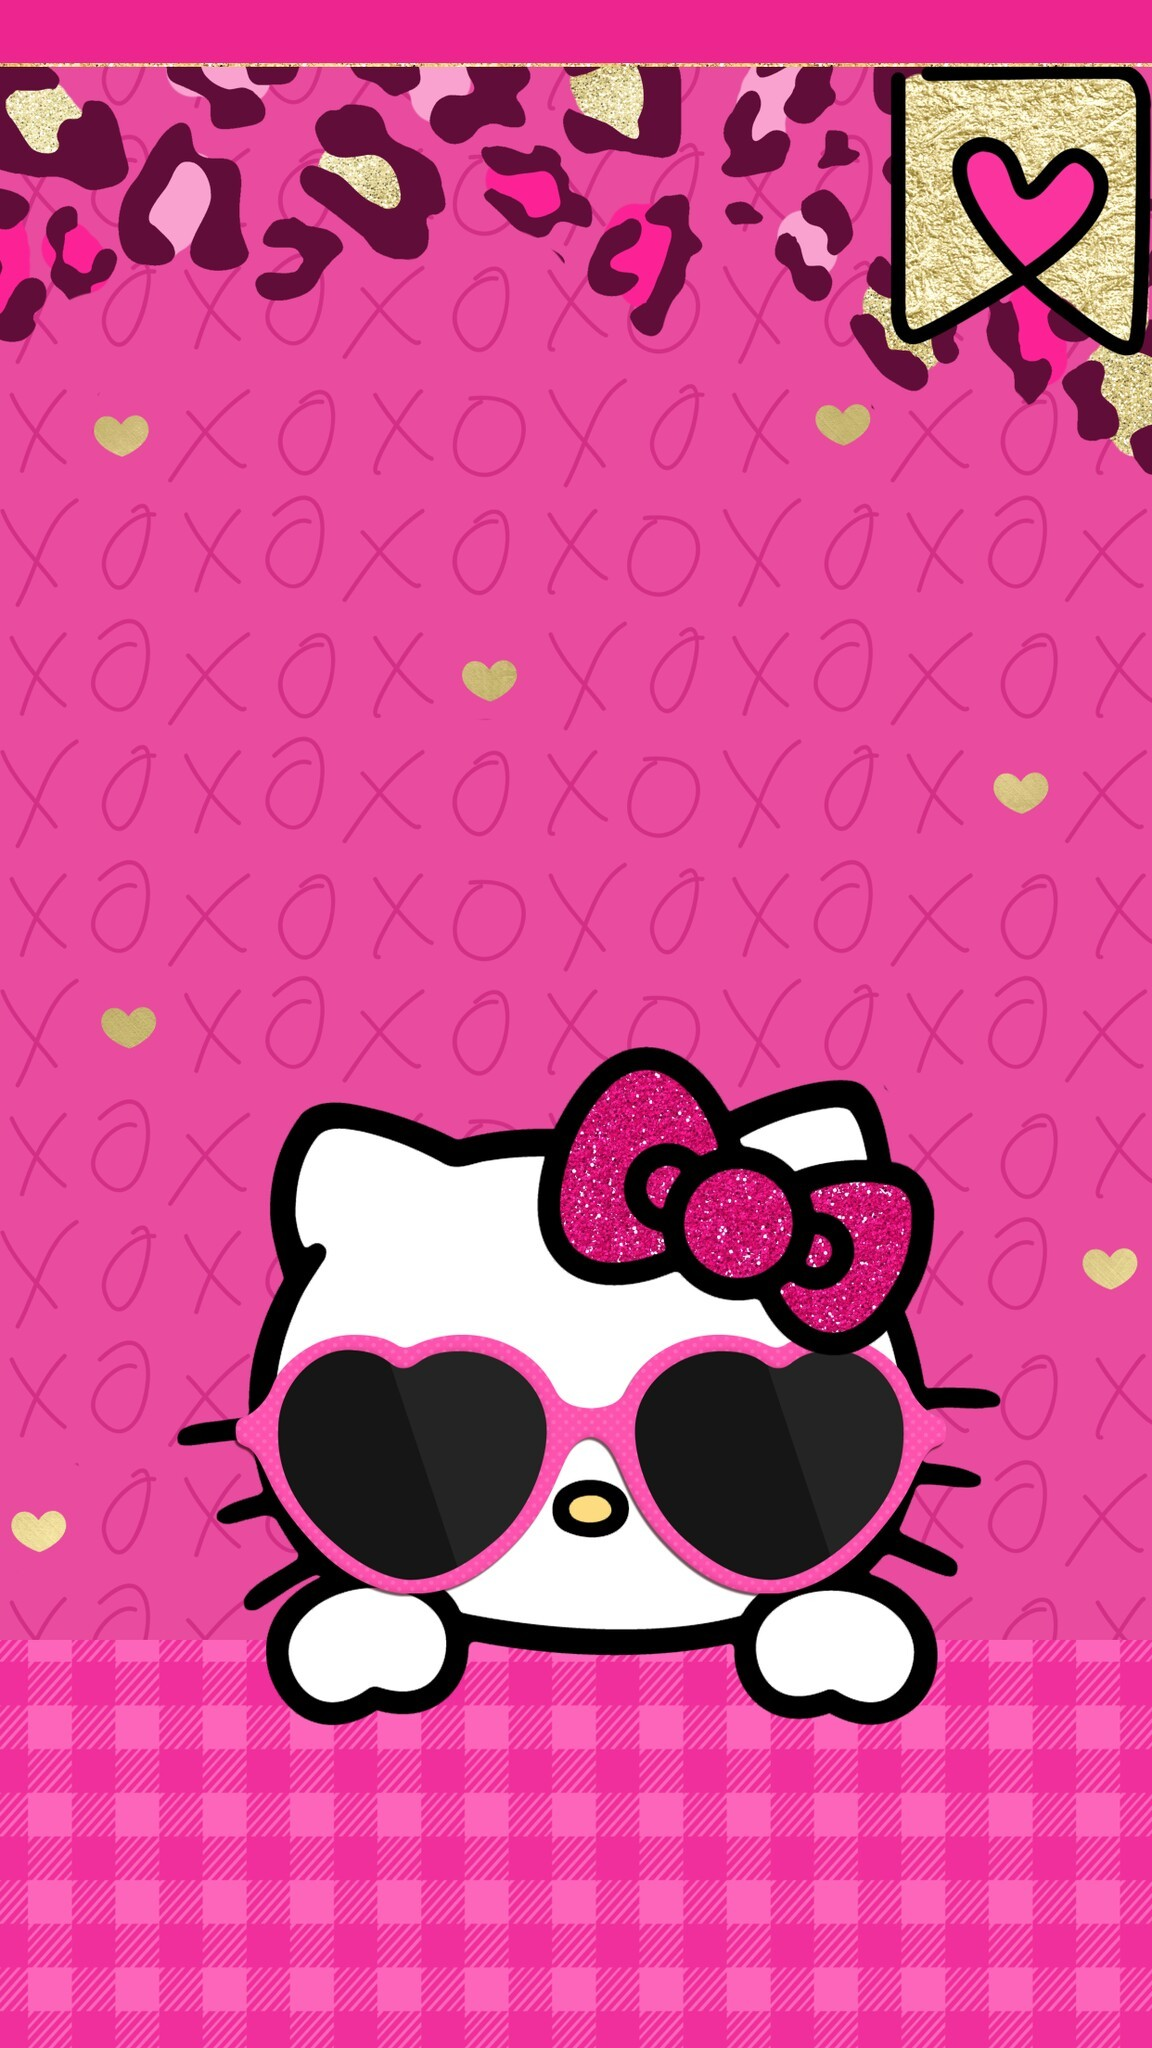 Hello kitty pictures wallpaper 65 images 2000x1500 thecheapjerseys Choice Image